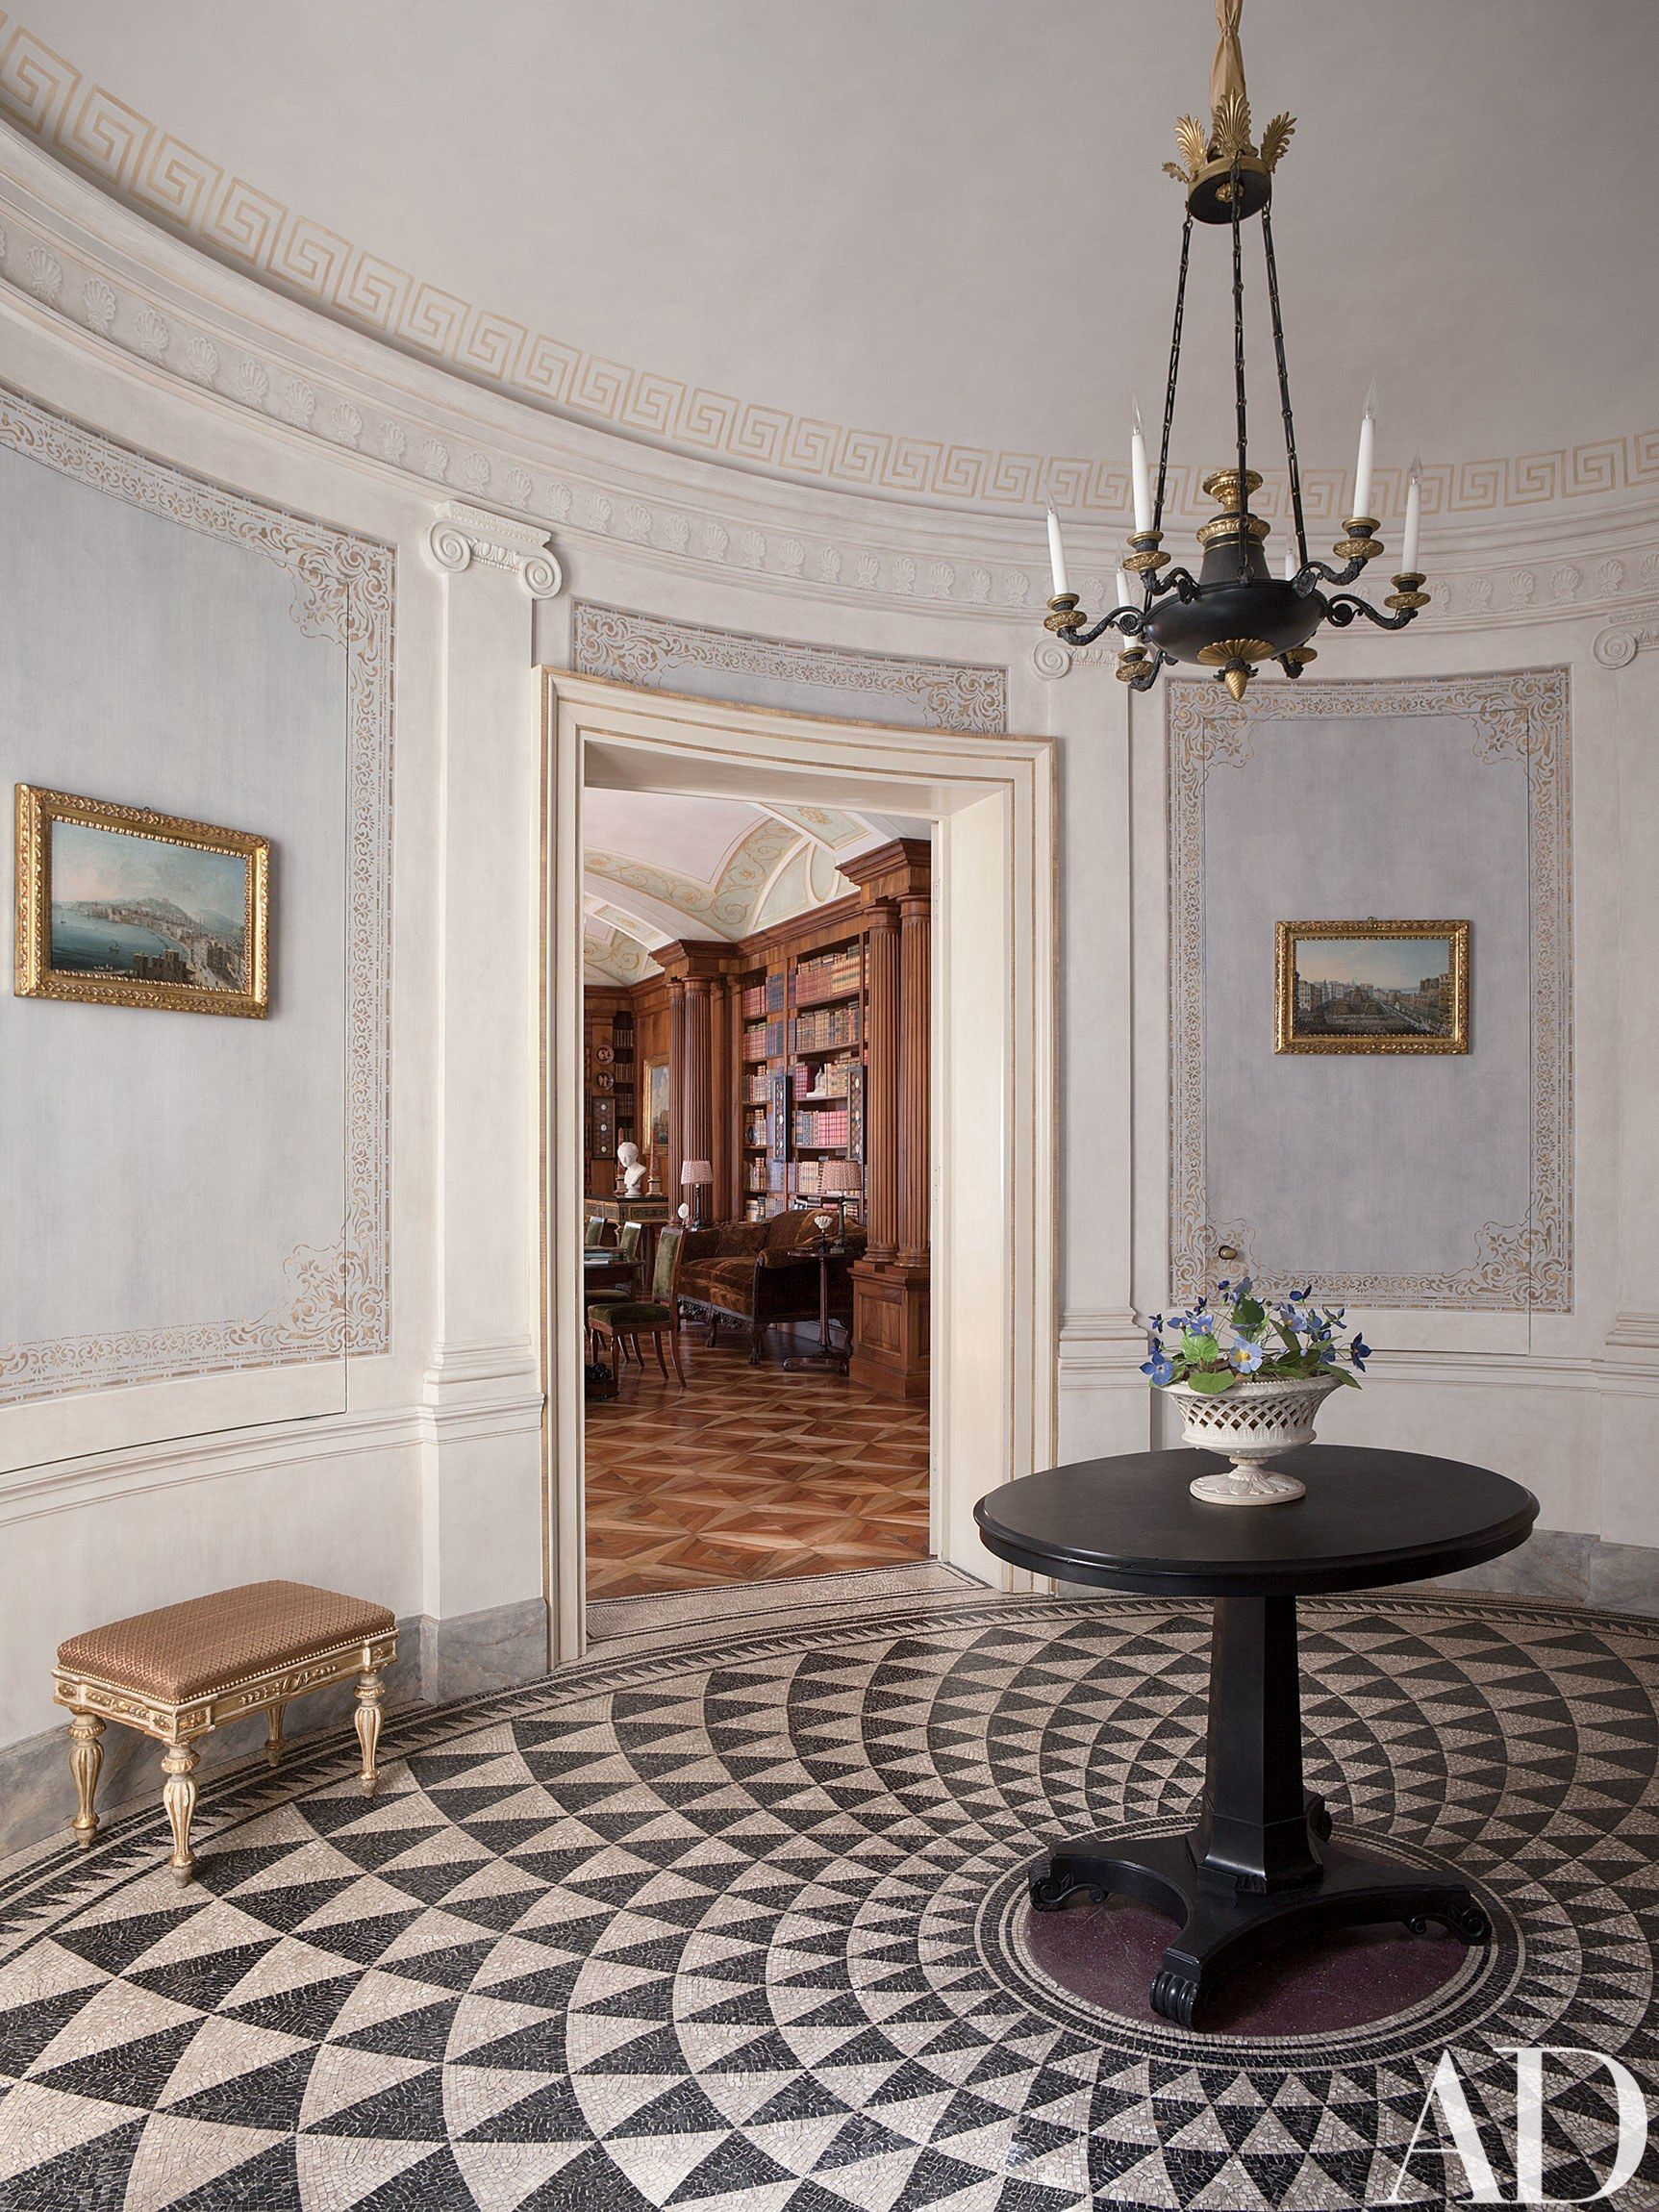 Look inside a luxurious apartment in naples with plenty of old world charm photos architectural digest